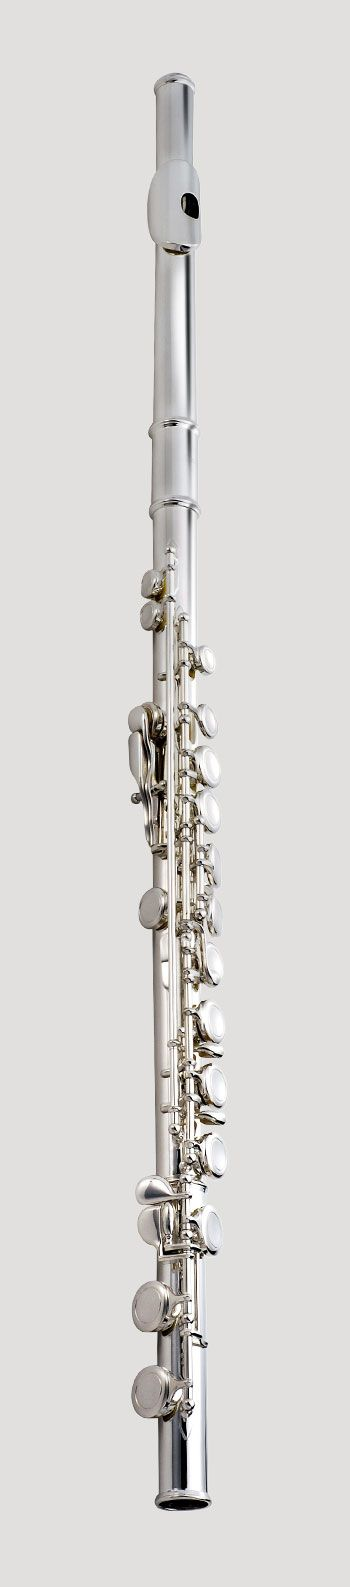 The Antigua Winds Flute line is new to Australia and has been a long time popular brand in the USA and other parts of the world.